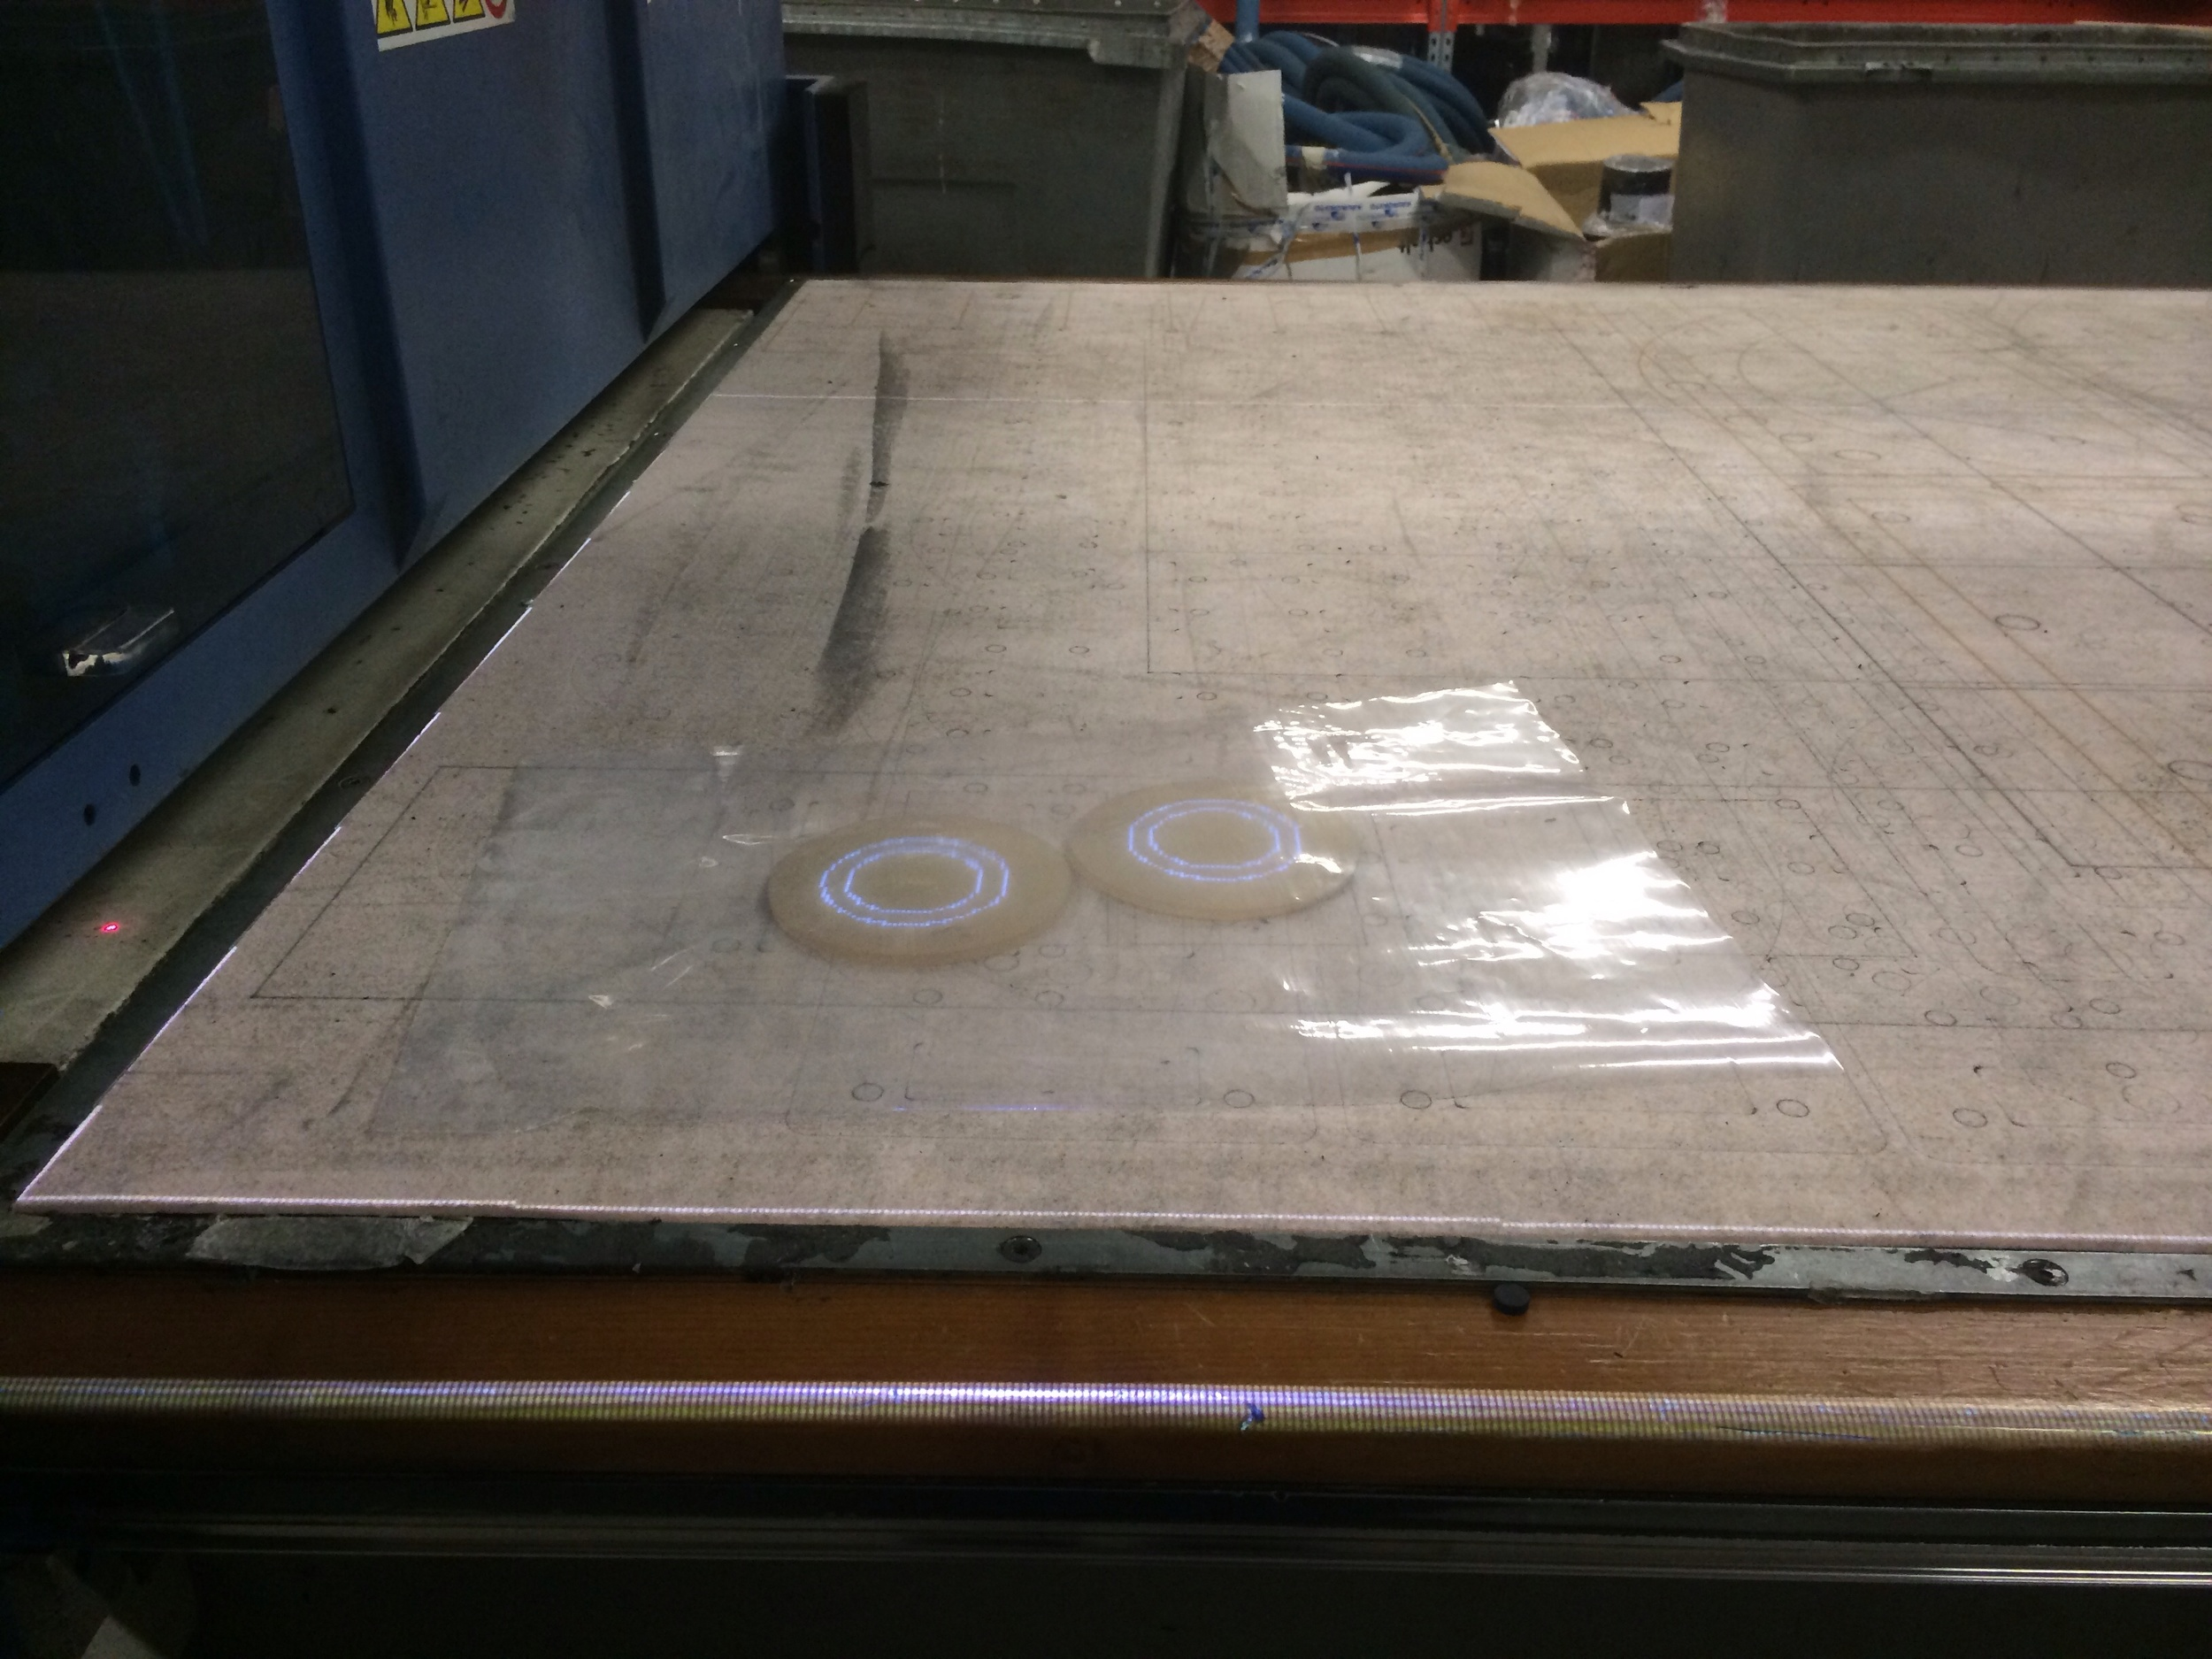 Plastic to increase suction on the vacuum table below to hold the flanges in place while cutting.